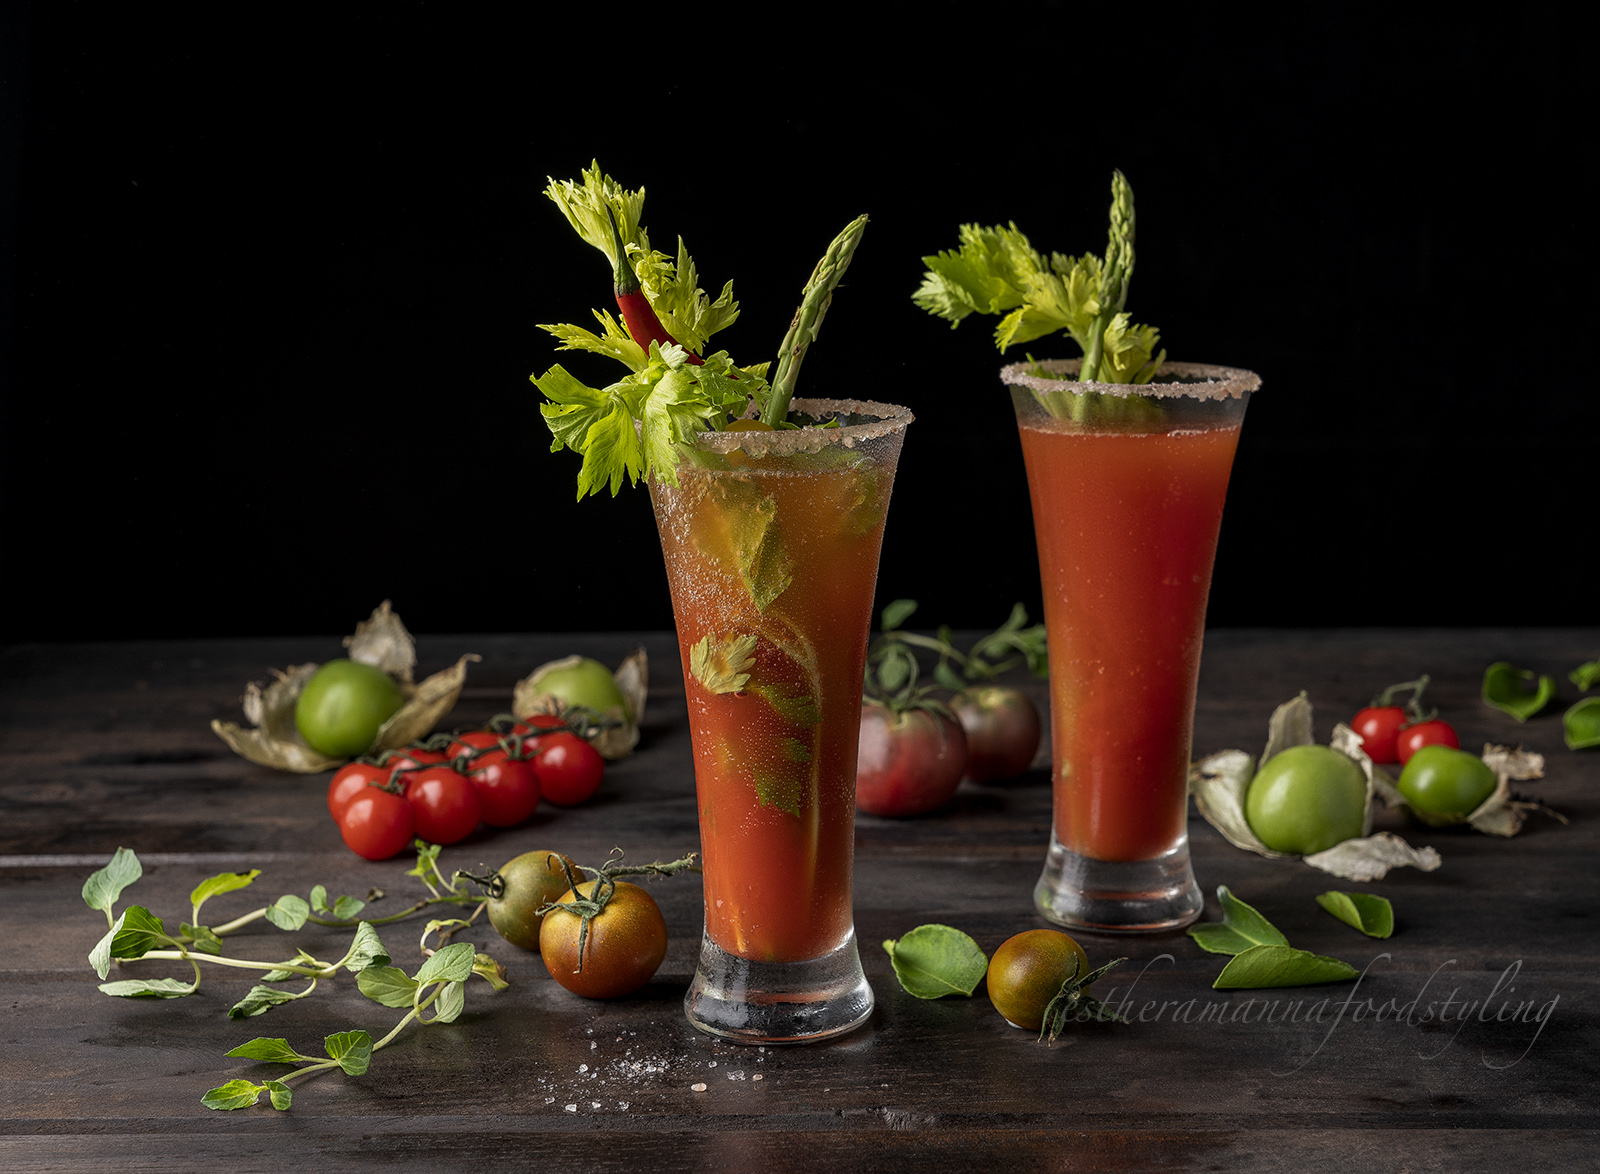 Refresher cocktail with fresh tomato juice